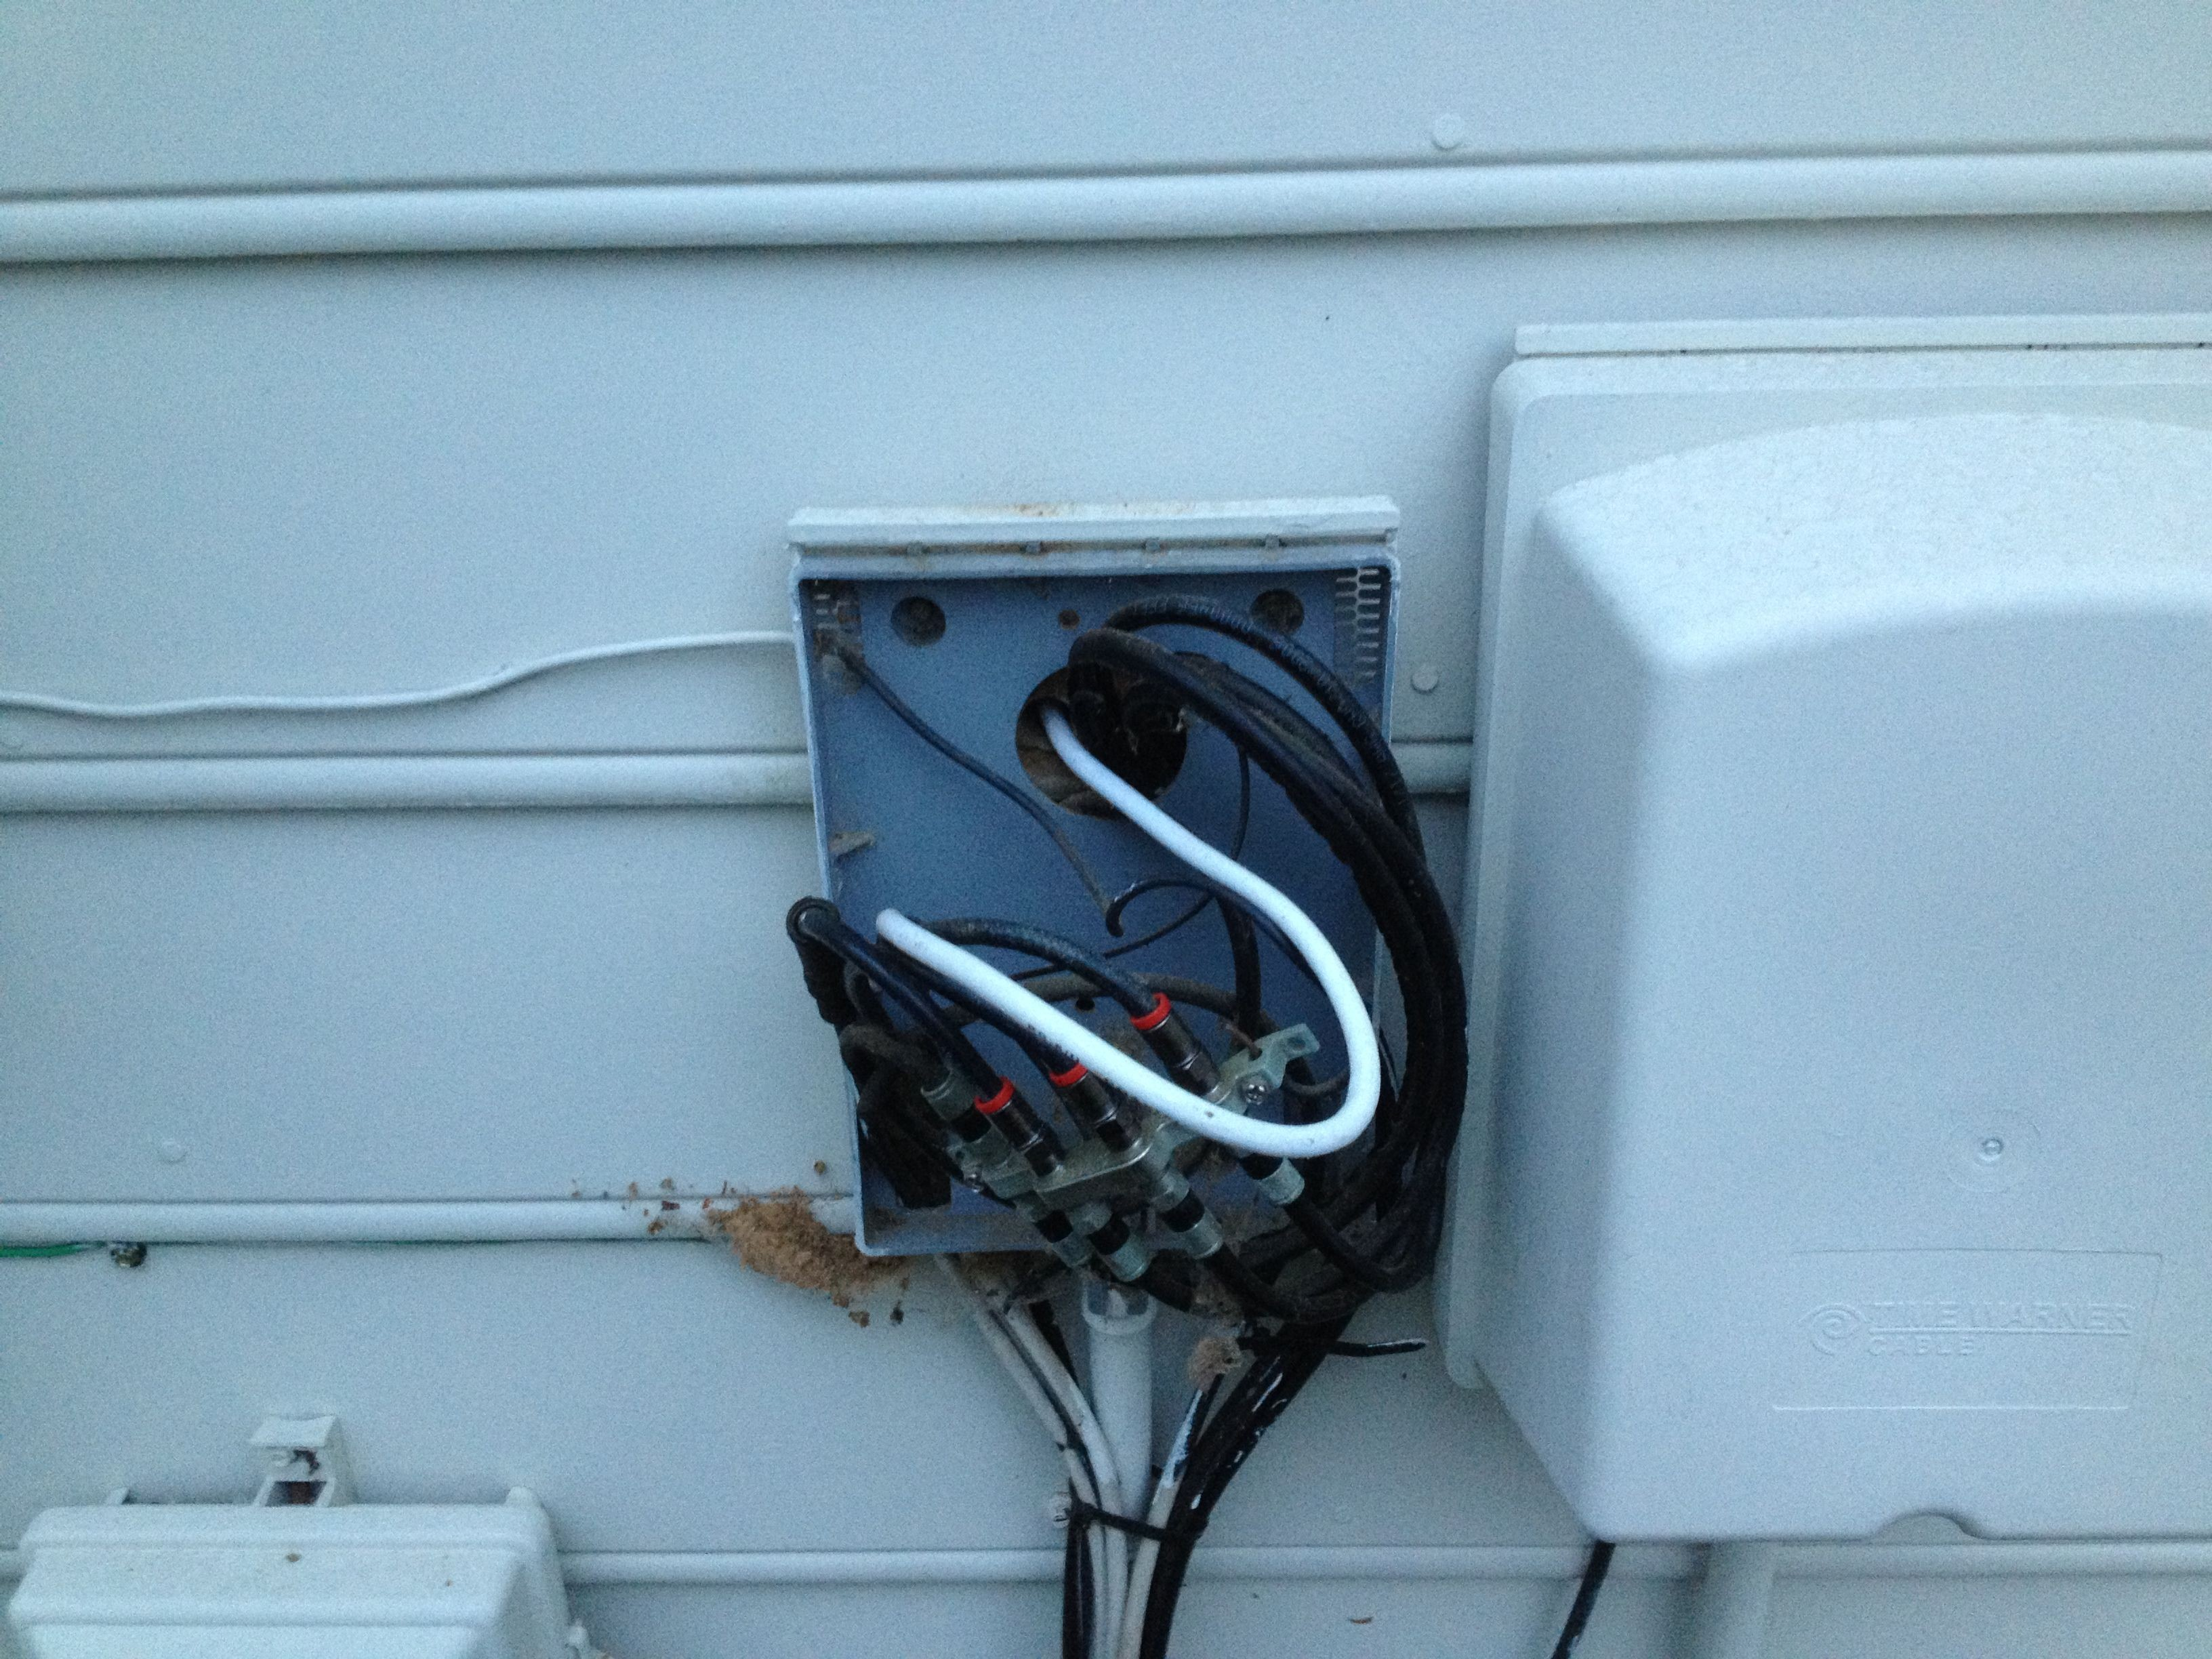 Cable jack installation for additional DirecTV receiver with bathroom TV wall mount installation